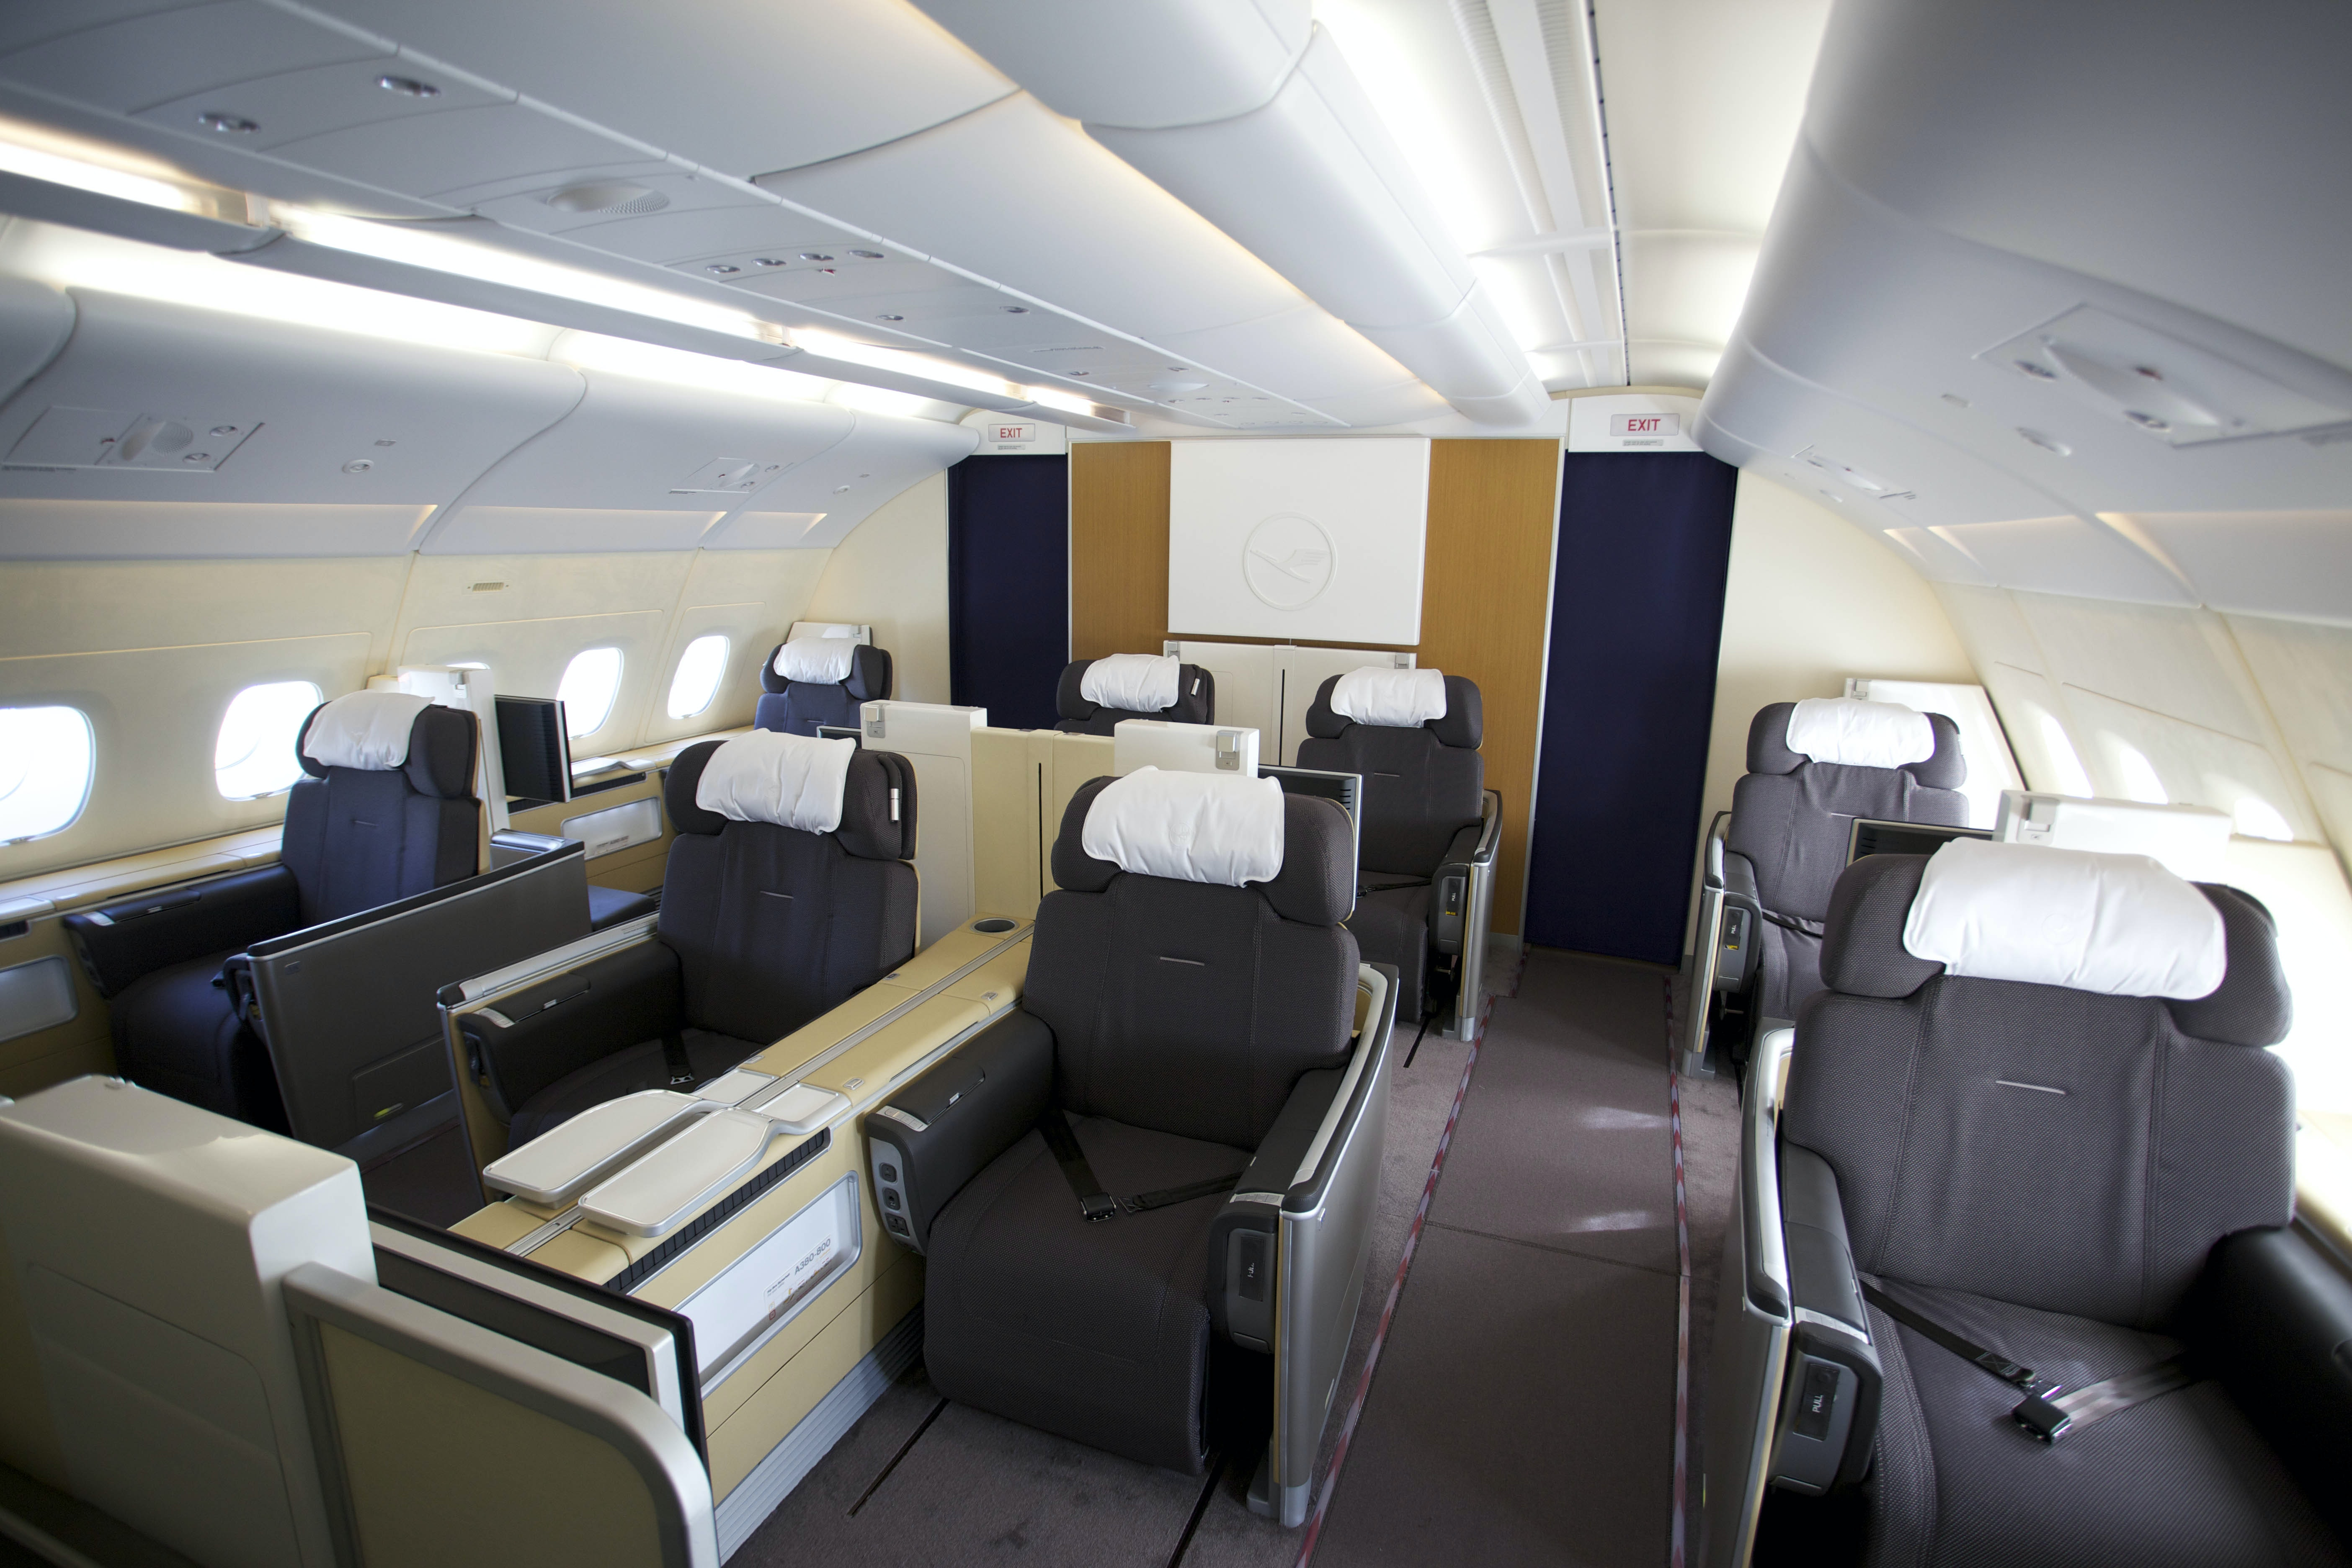 The spacious first-class seats on Lufthansa